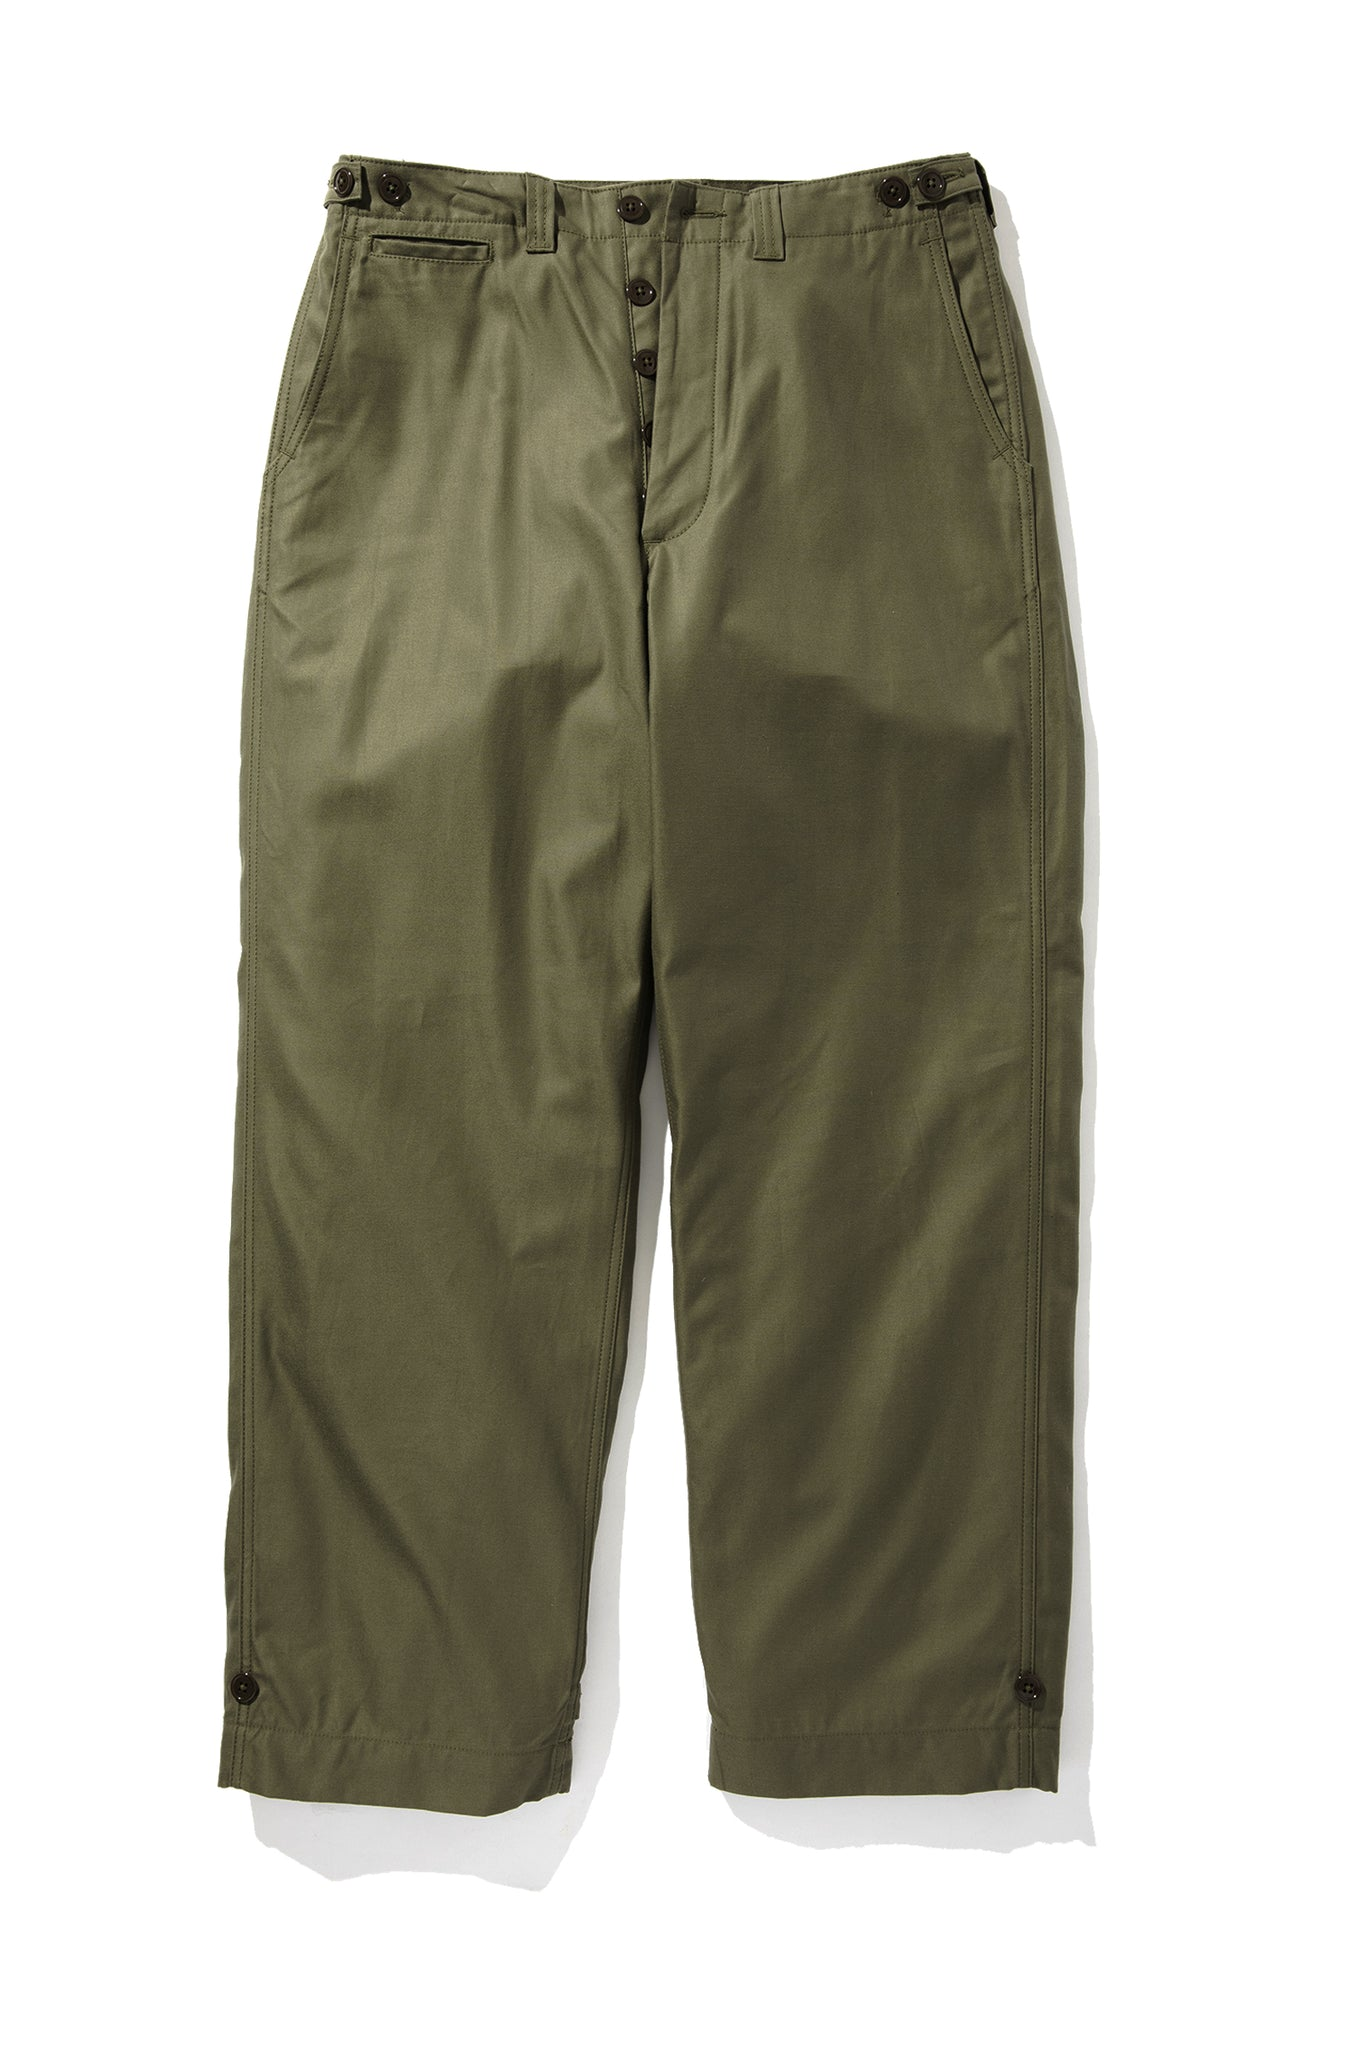 TROUSERS, FIELD, COTTON, O.D.